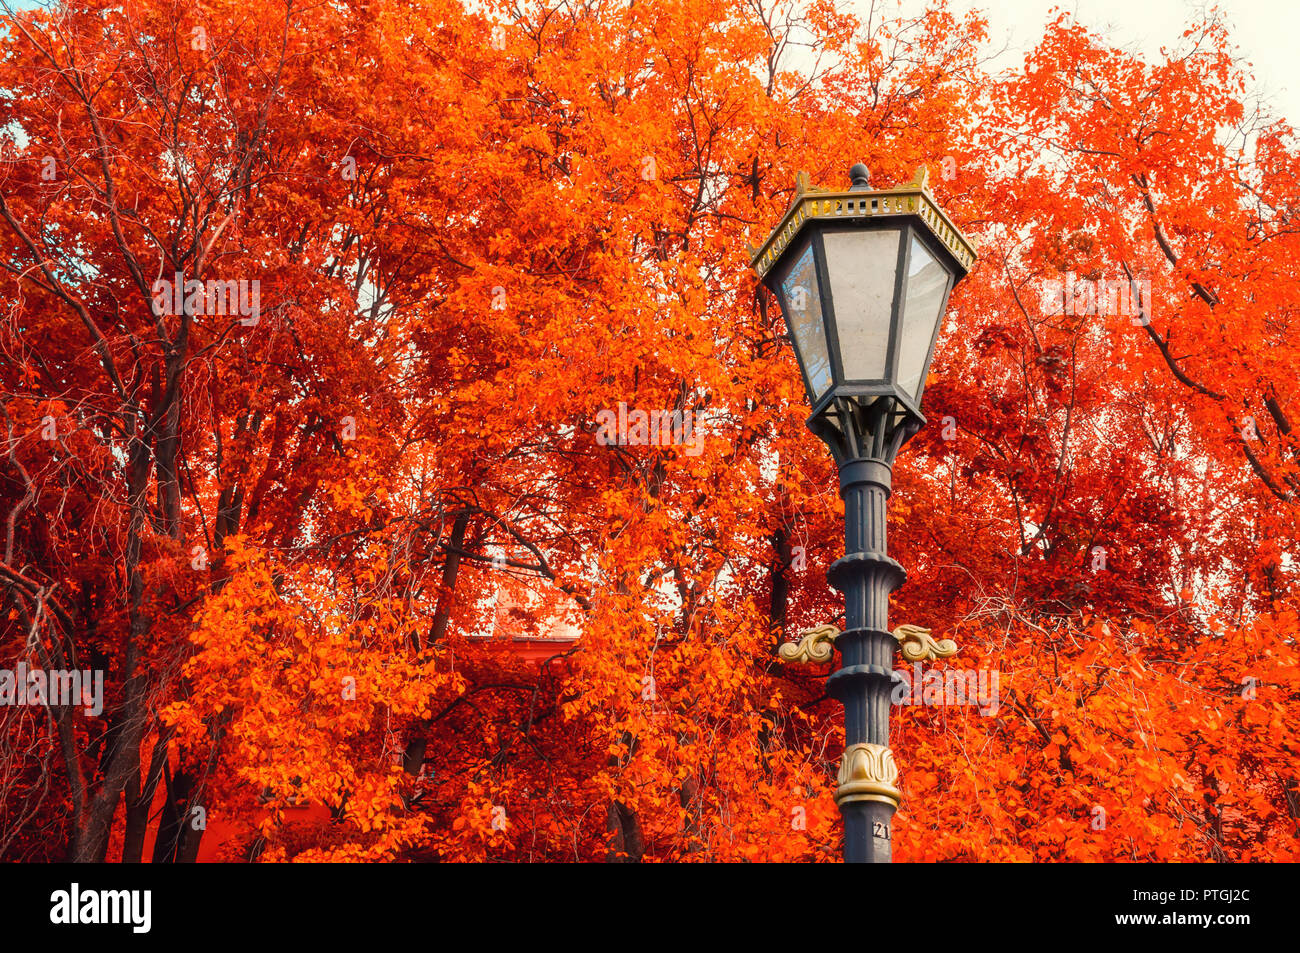 Fall trees background. Metal lantern on the background of the fall trees. Fall park scene in vintage tones - Stock Image